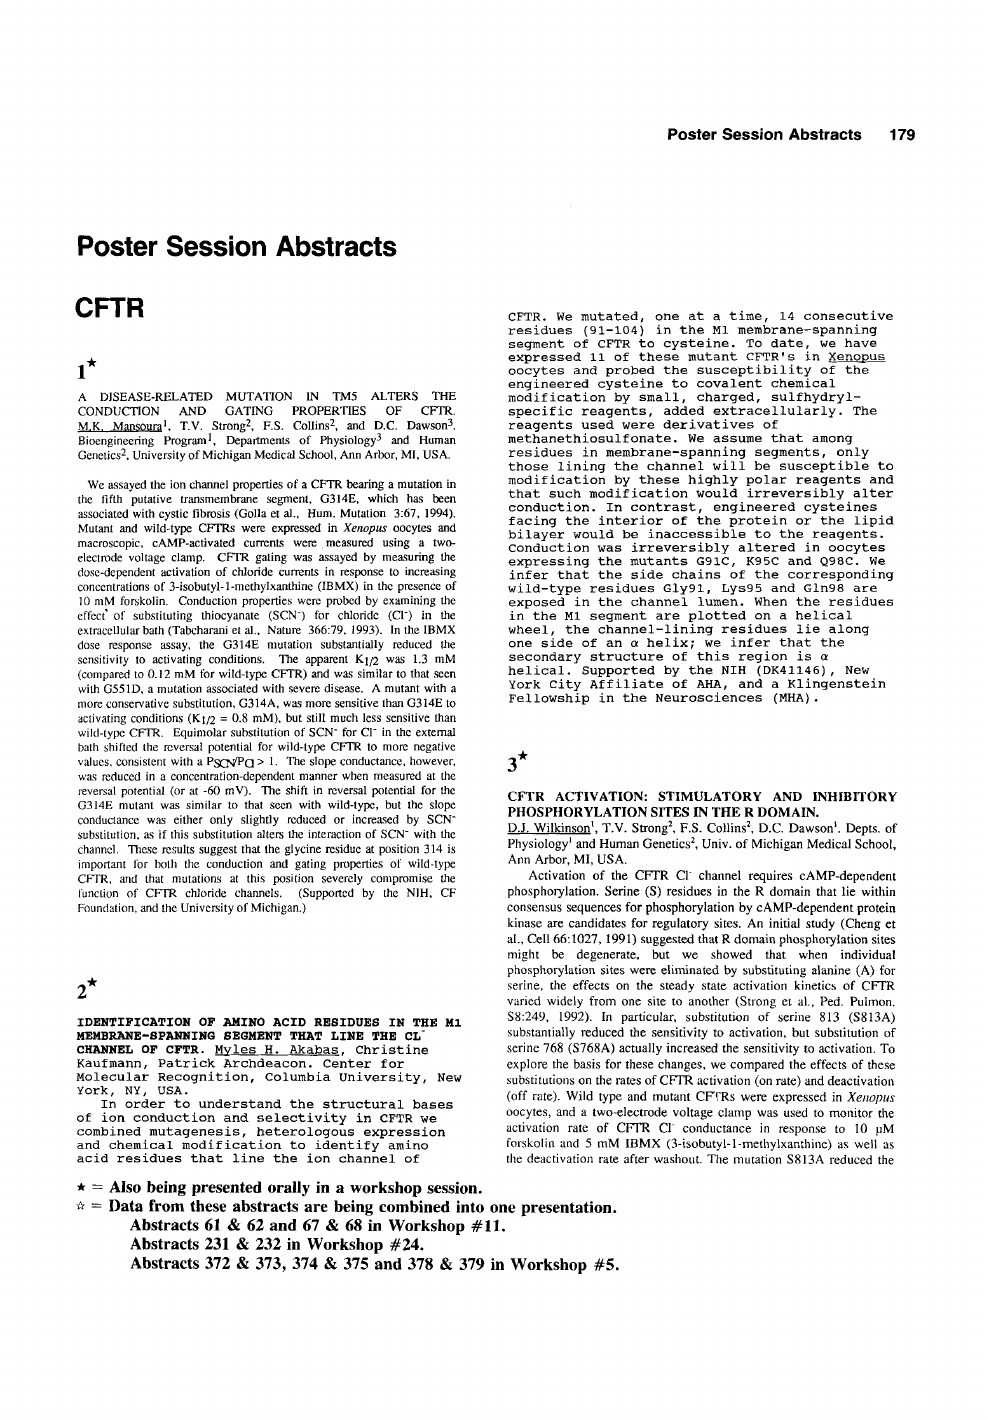 Poster session abstracts – topic of research paper in Biological